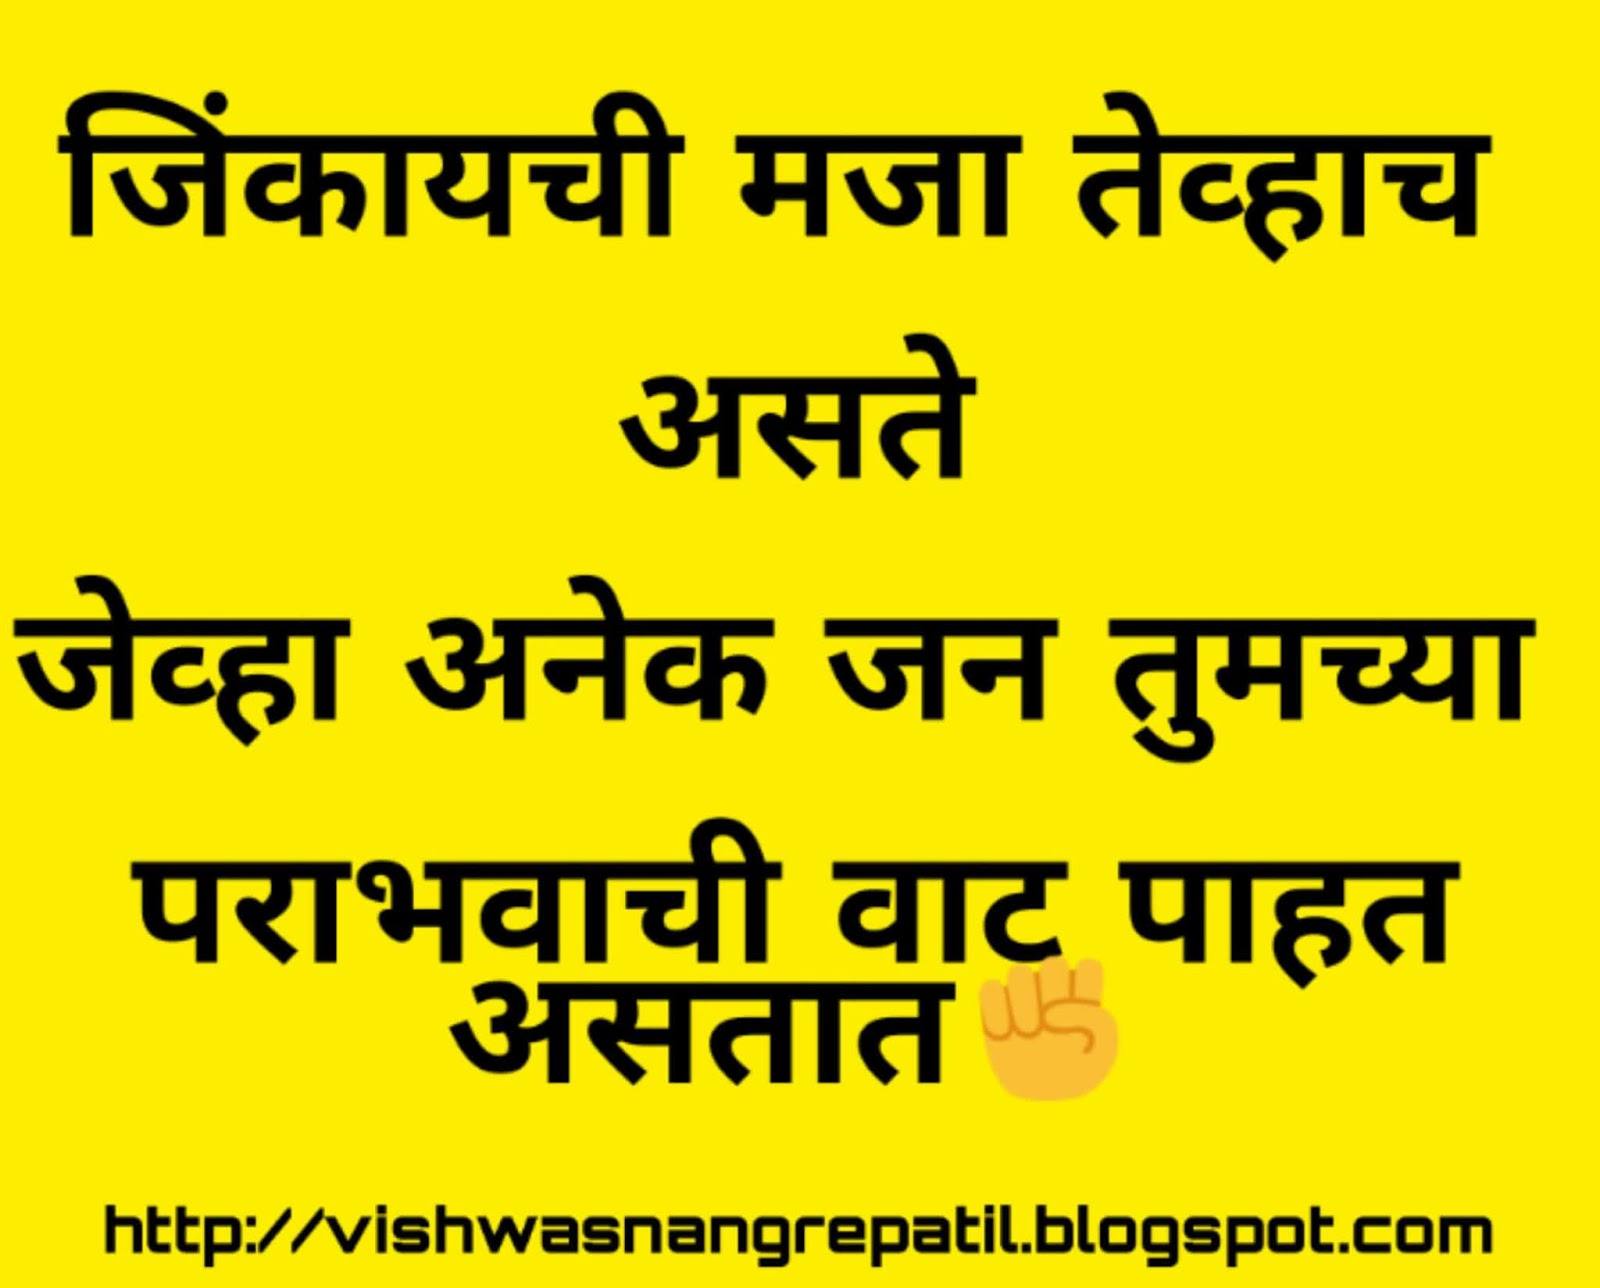 Best 101+ Motivational & Inspirational Quotes/good thoughts in Marathi